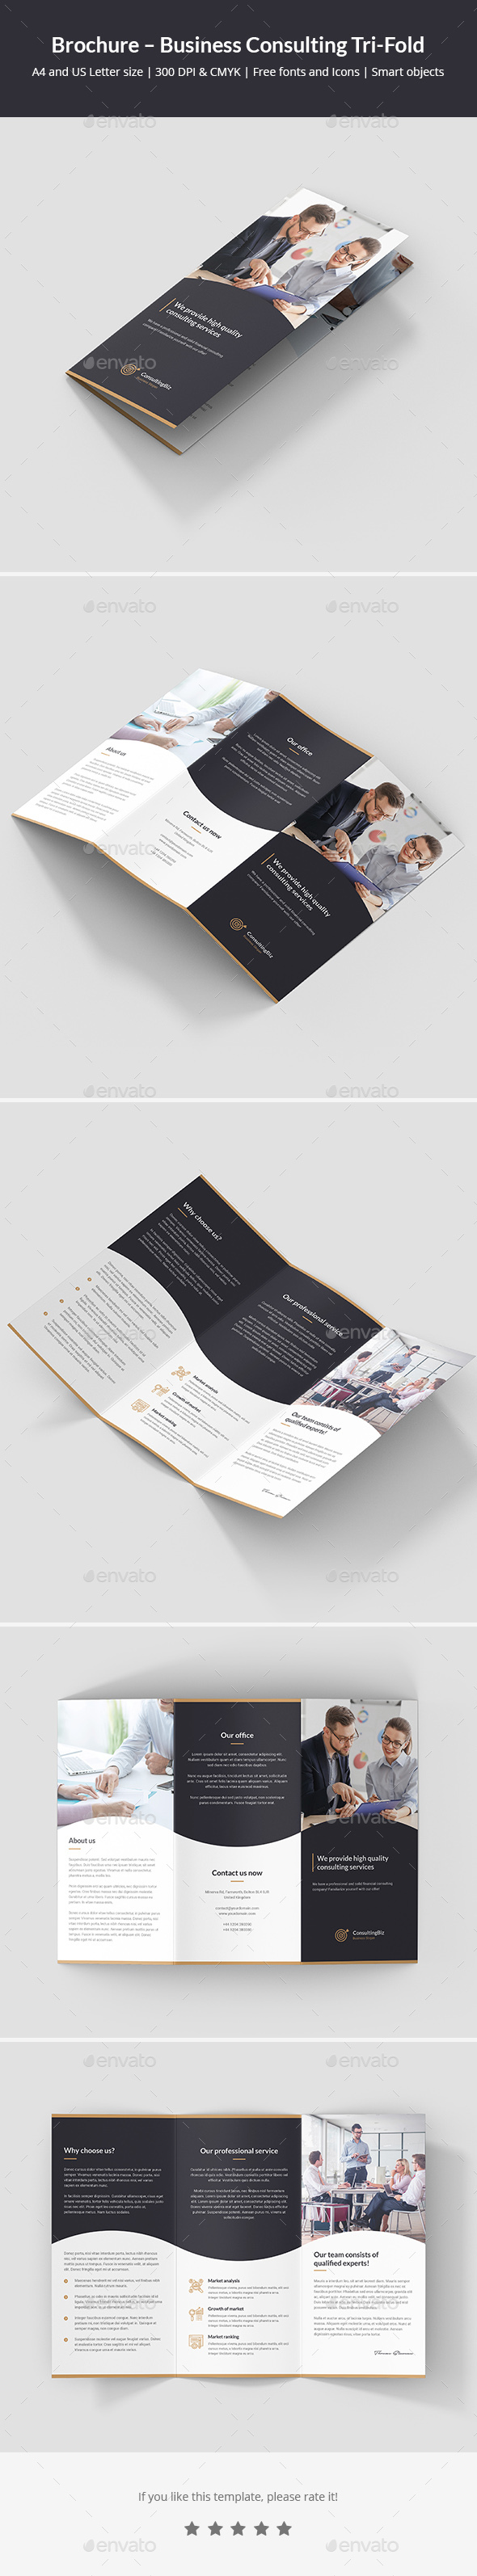 Brochure  Business Consulting Tri-Fold